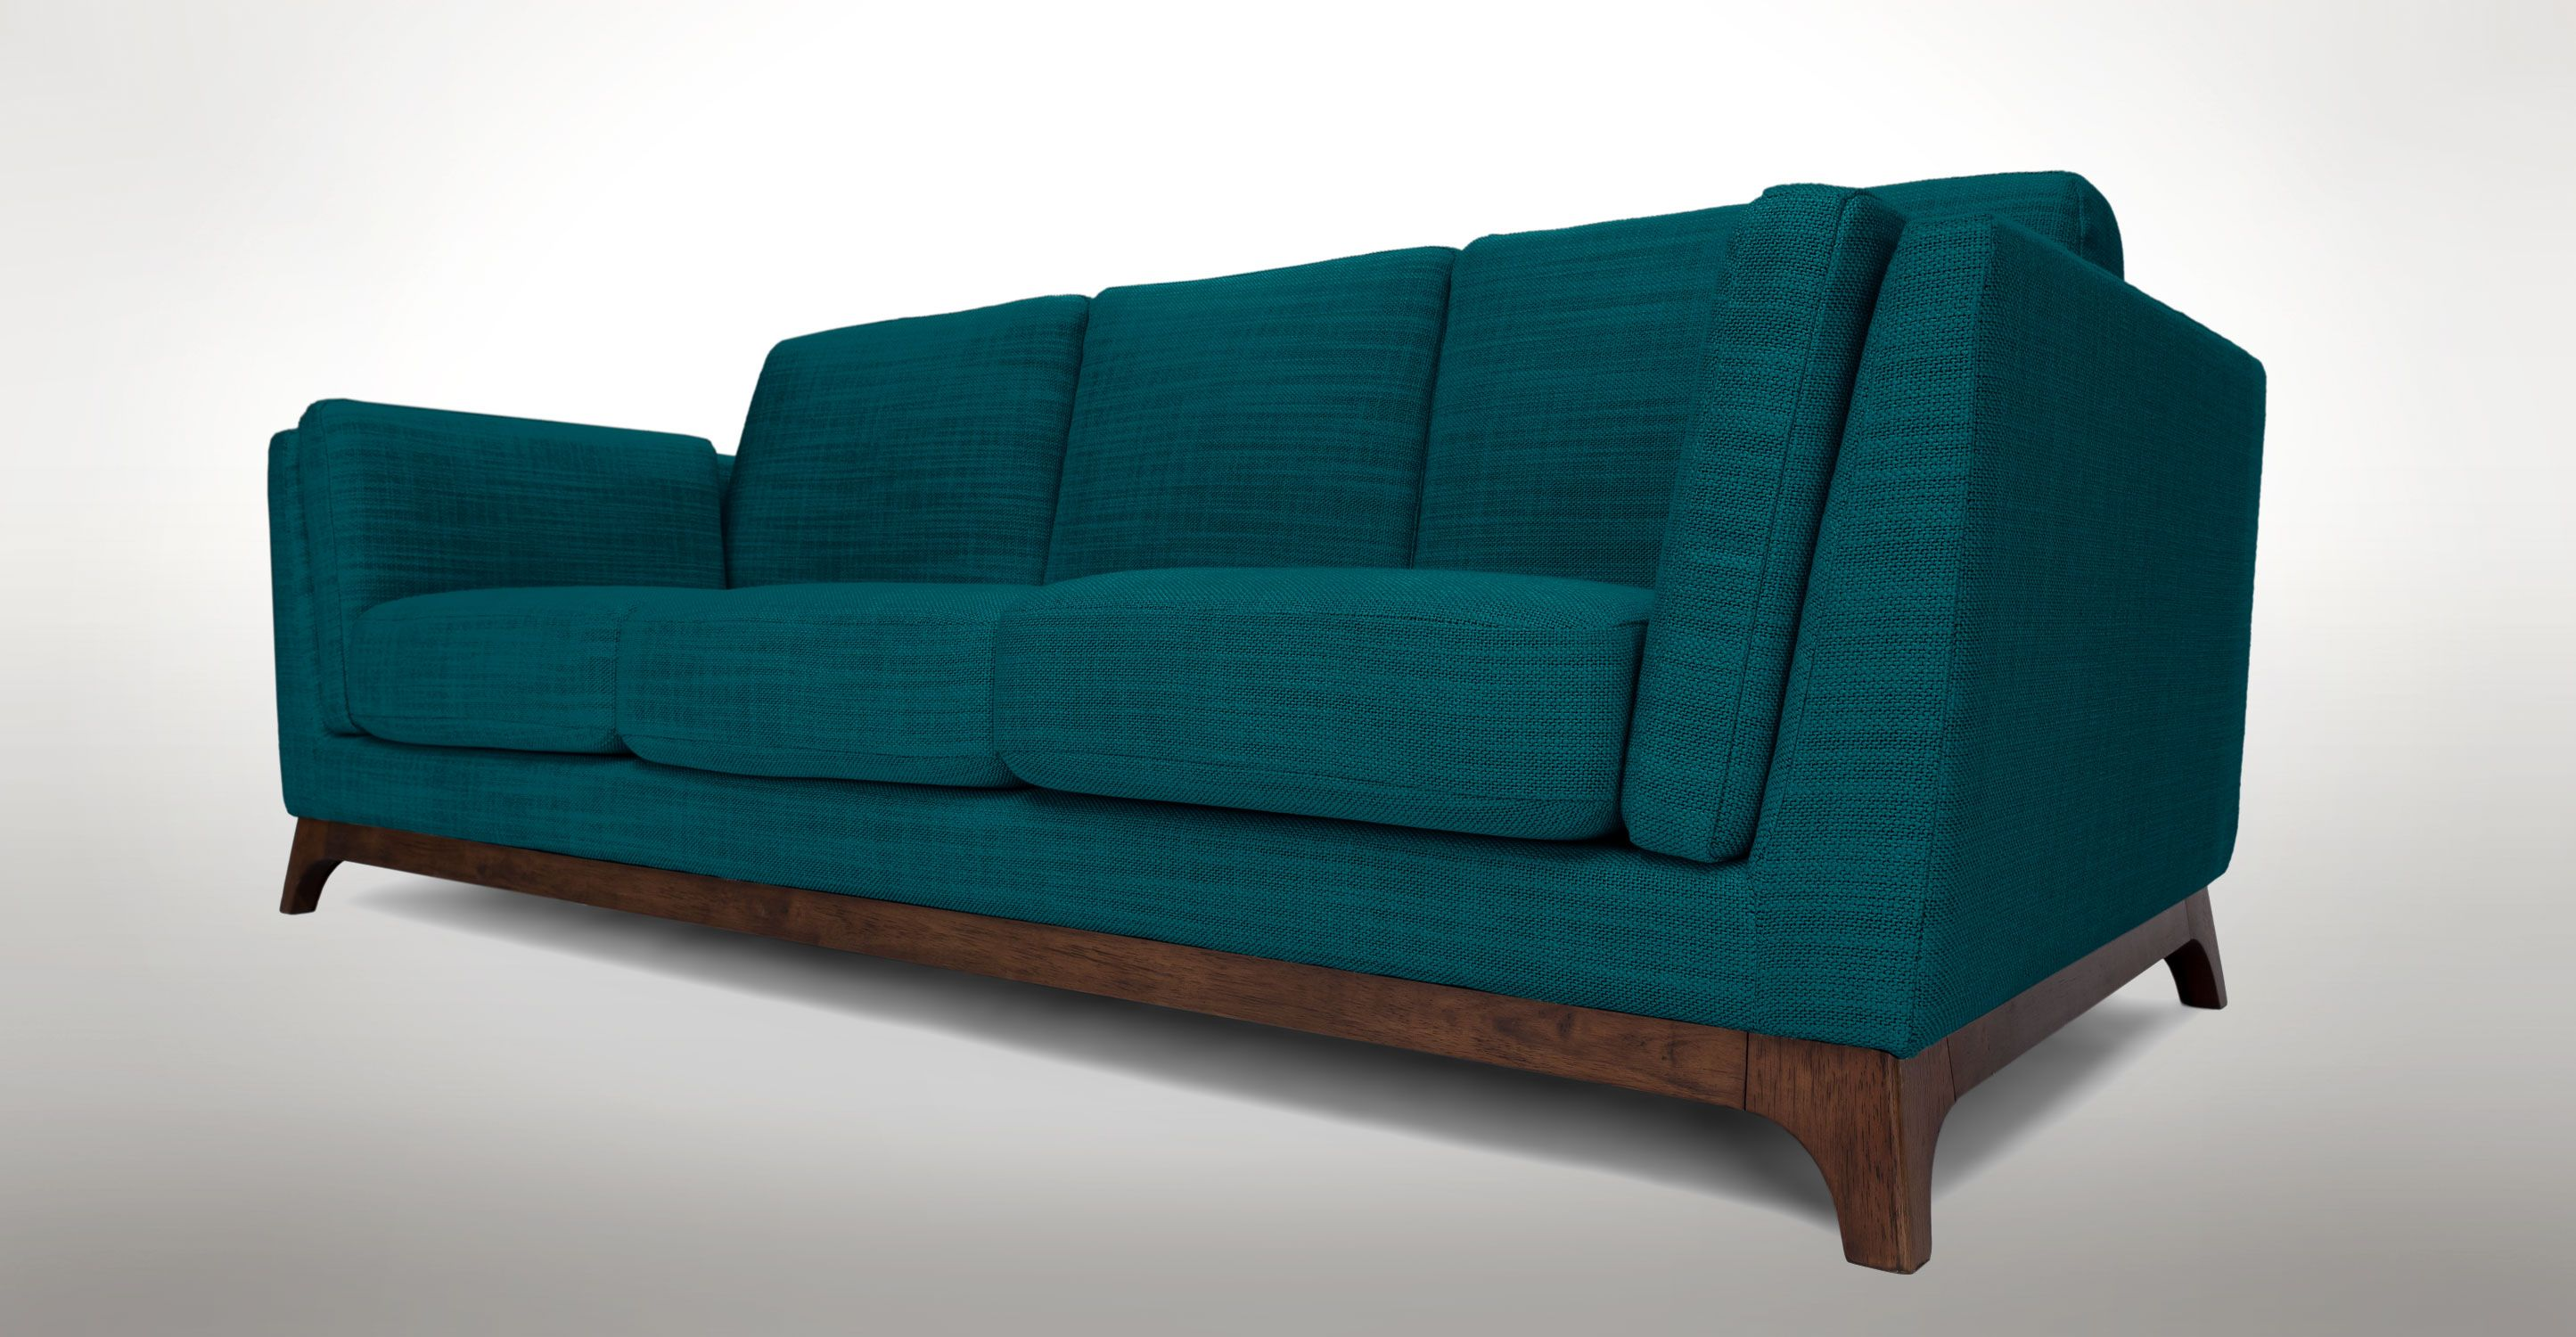 Green Blue Sofa 3 Seater Solid Wood Legs Article Ceni Modern